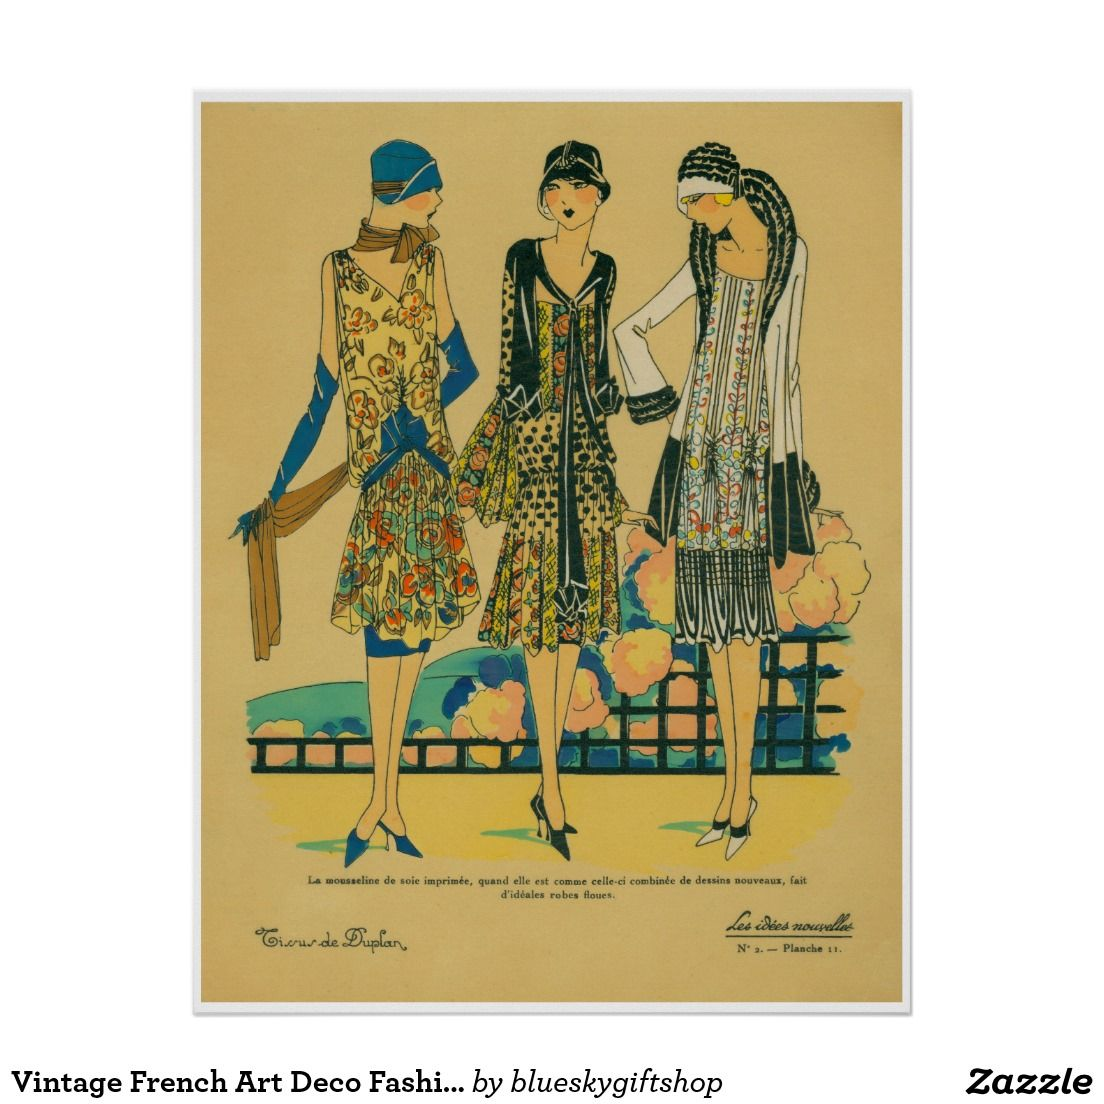 Vintage French Art Deco Fashion Poster | posters | Pinterest ...